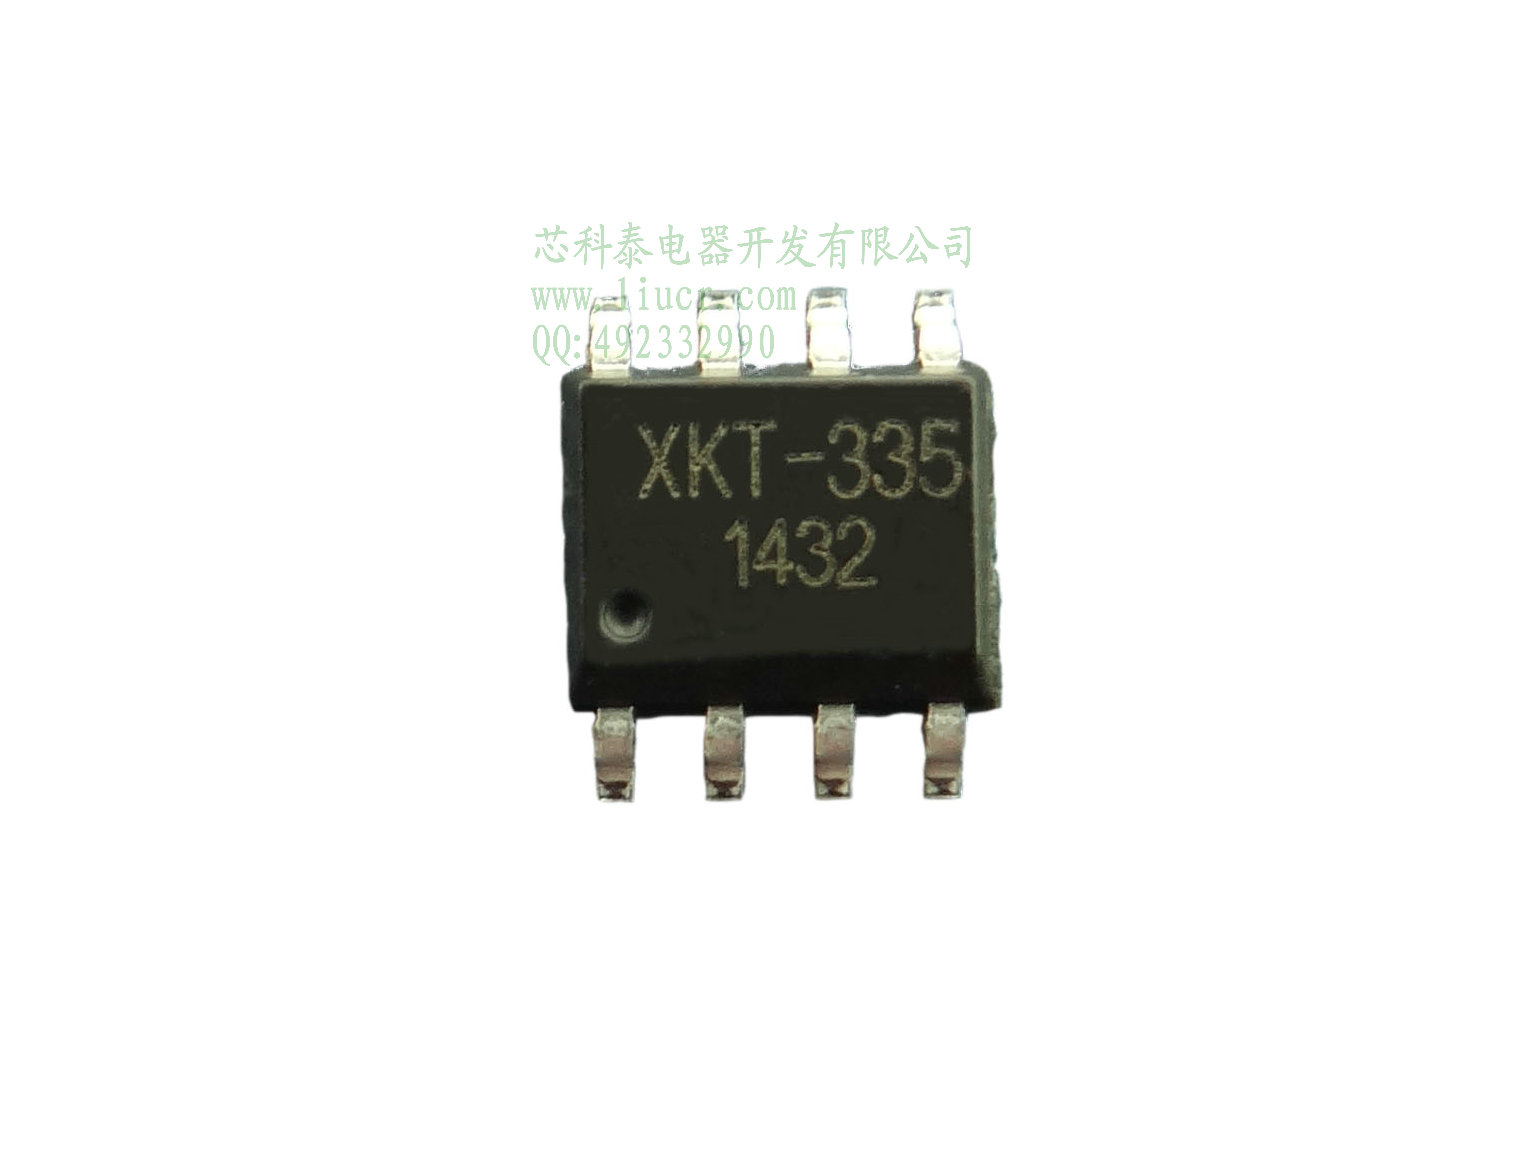 XKT-335 High Current Low Price Wireless  Supply Wireless Charging  Chip IC